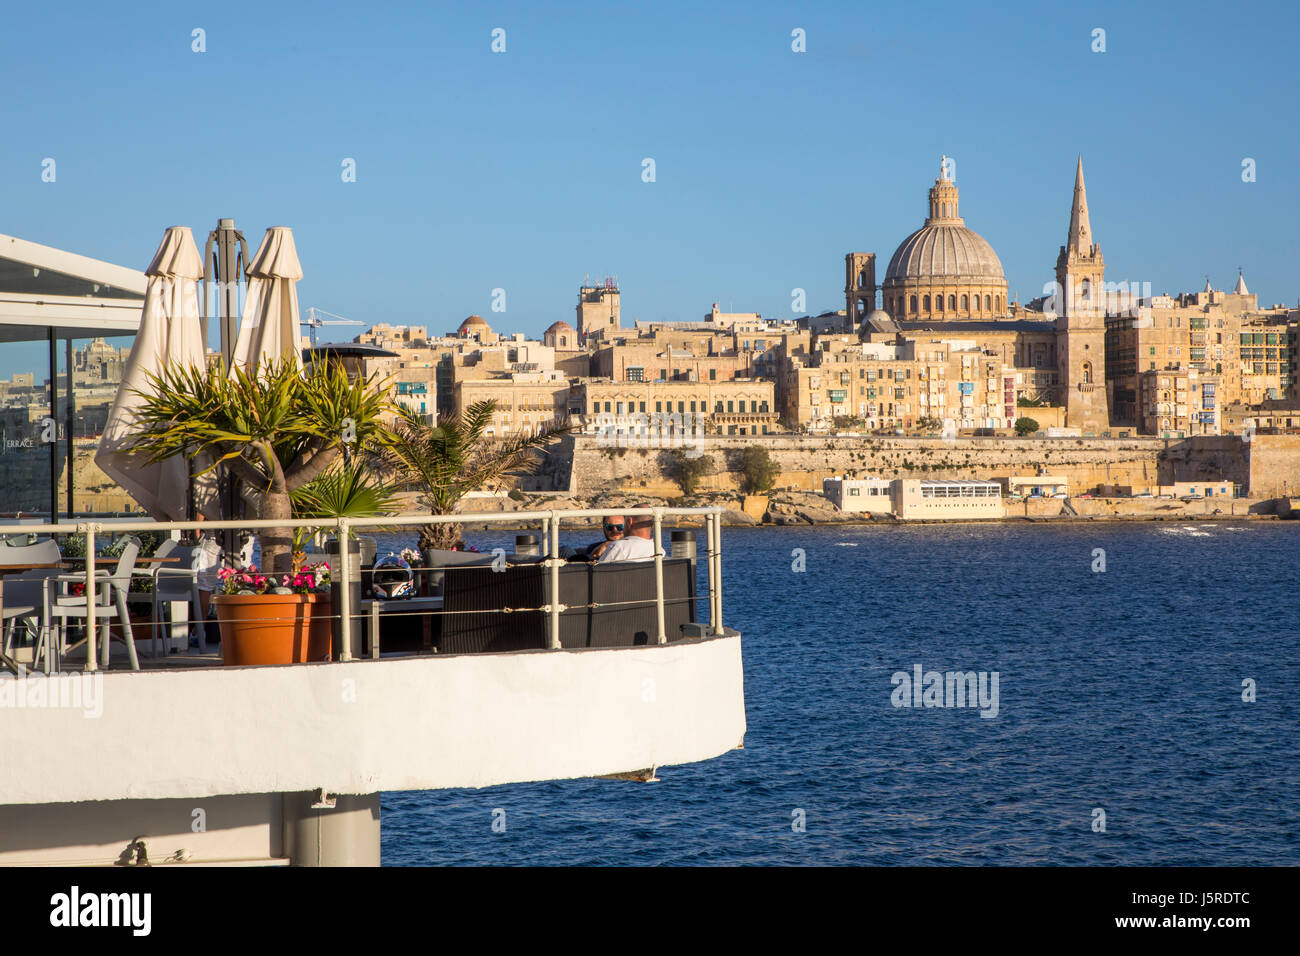 Skyline of Valetta, the capital of Malta, dome of the Carmelite church and steeple of St. Paul's Anglican Pro - Stock Image